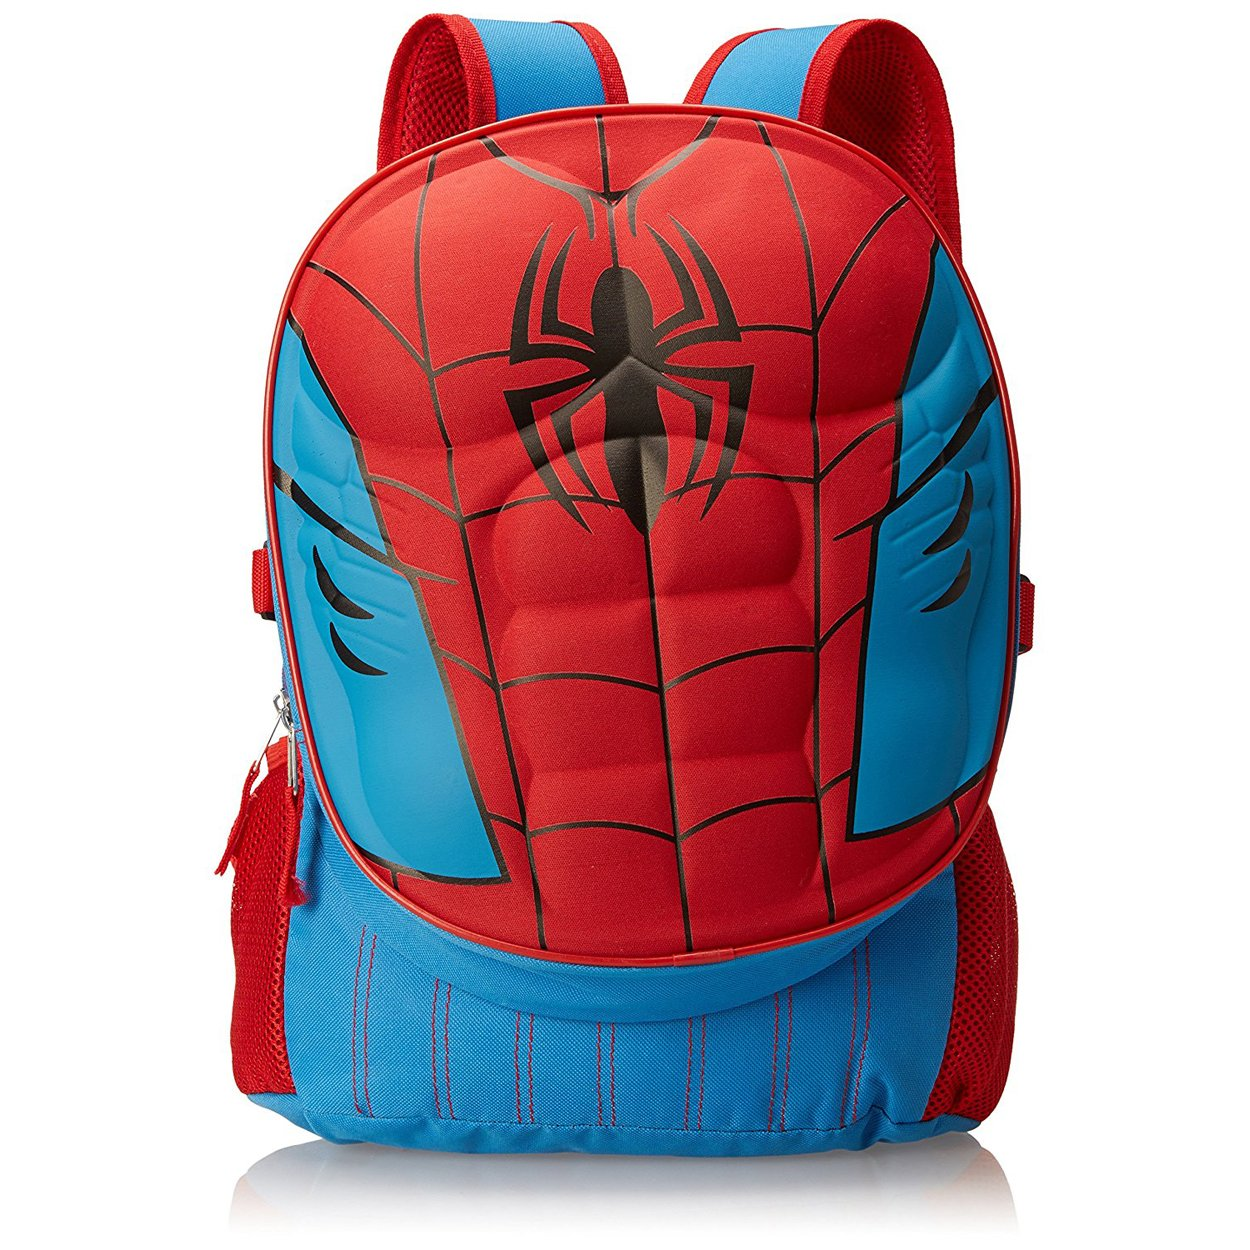 Spider-Man 3D Molded 16 inch Backpack